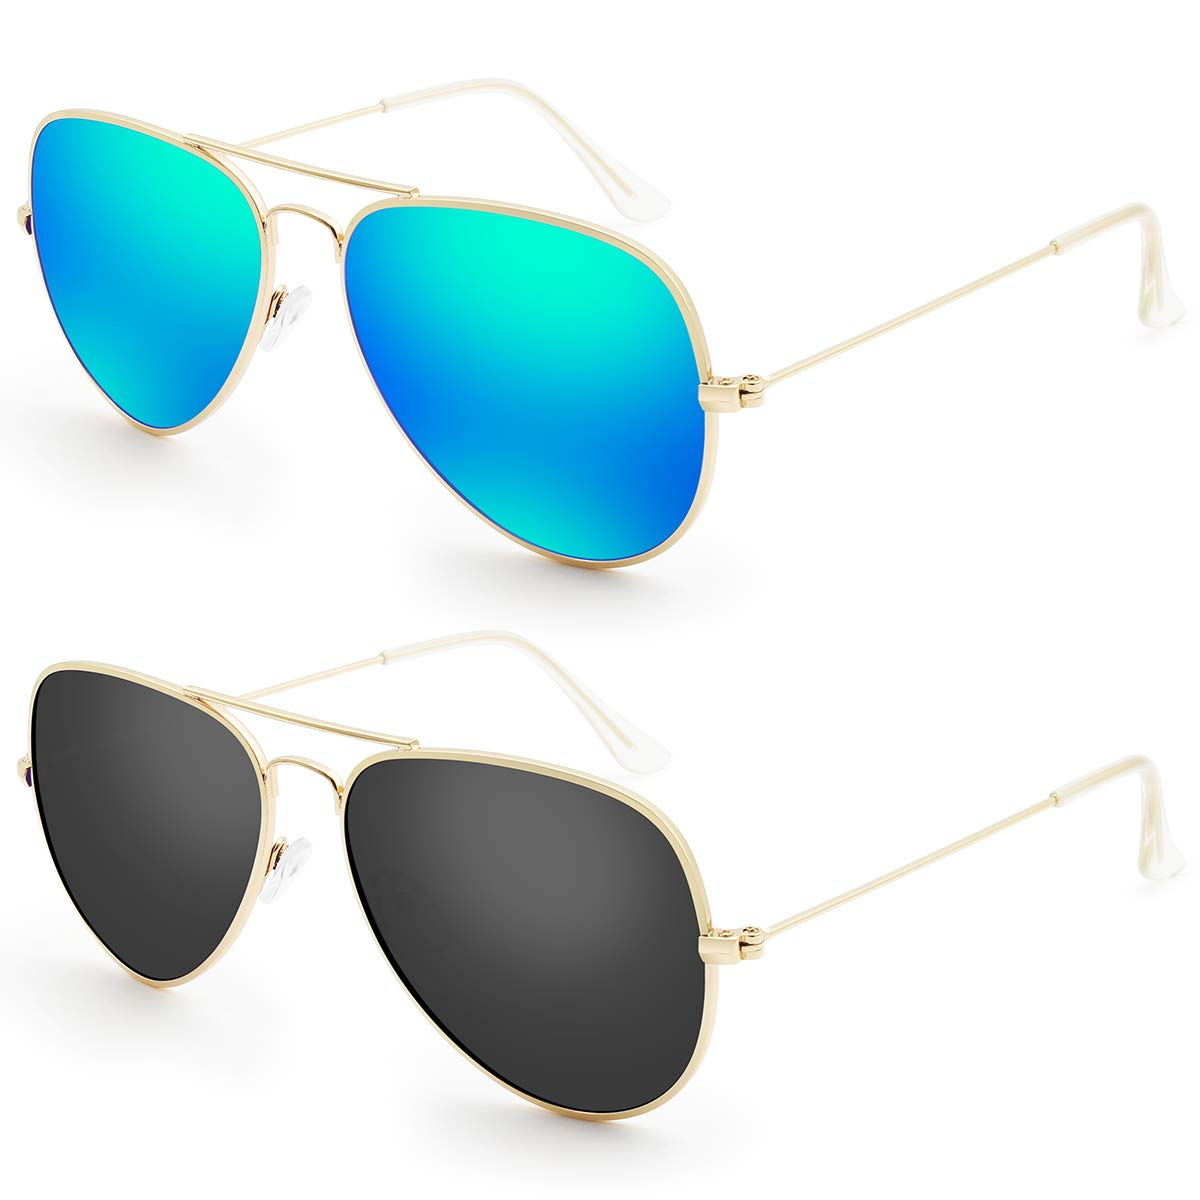 Livhò Sunglasses for Men Women Aviator Polarized Metal Mirror UV 400 Lens Protection (Gold Grey+Blue Green) by Livhò (Image #1)